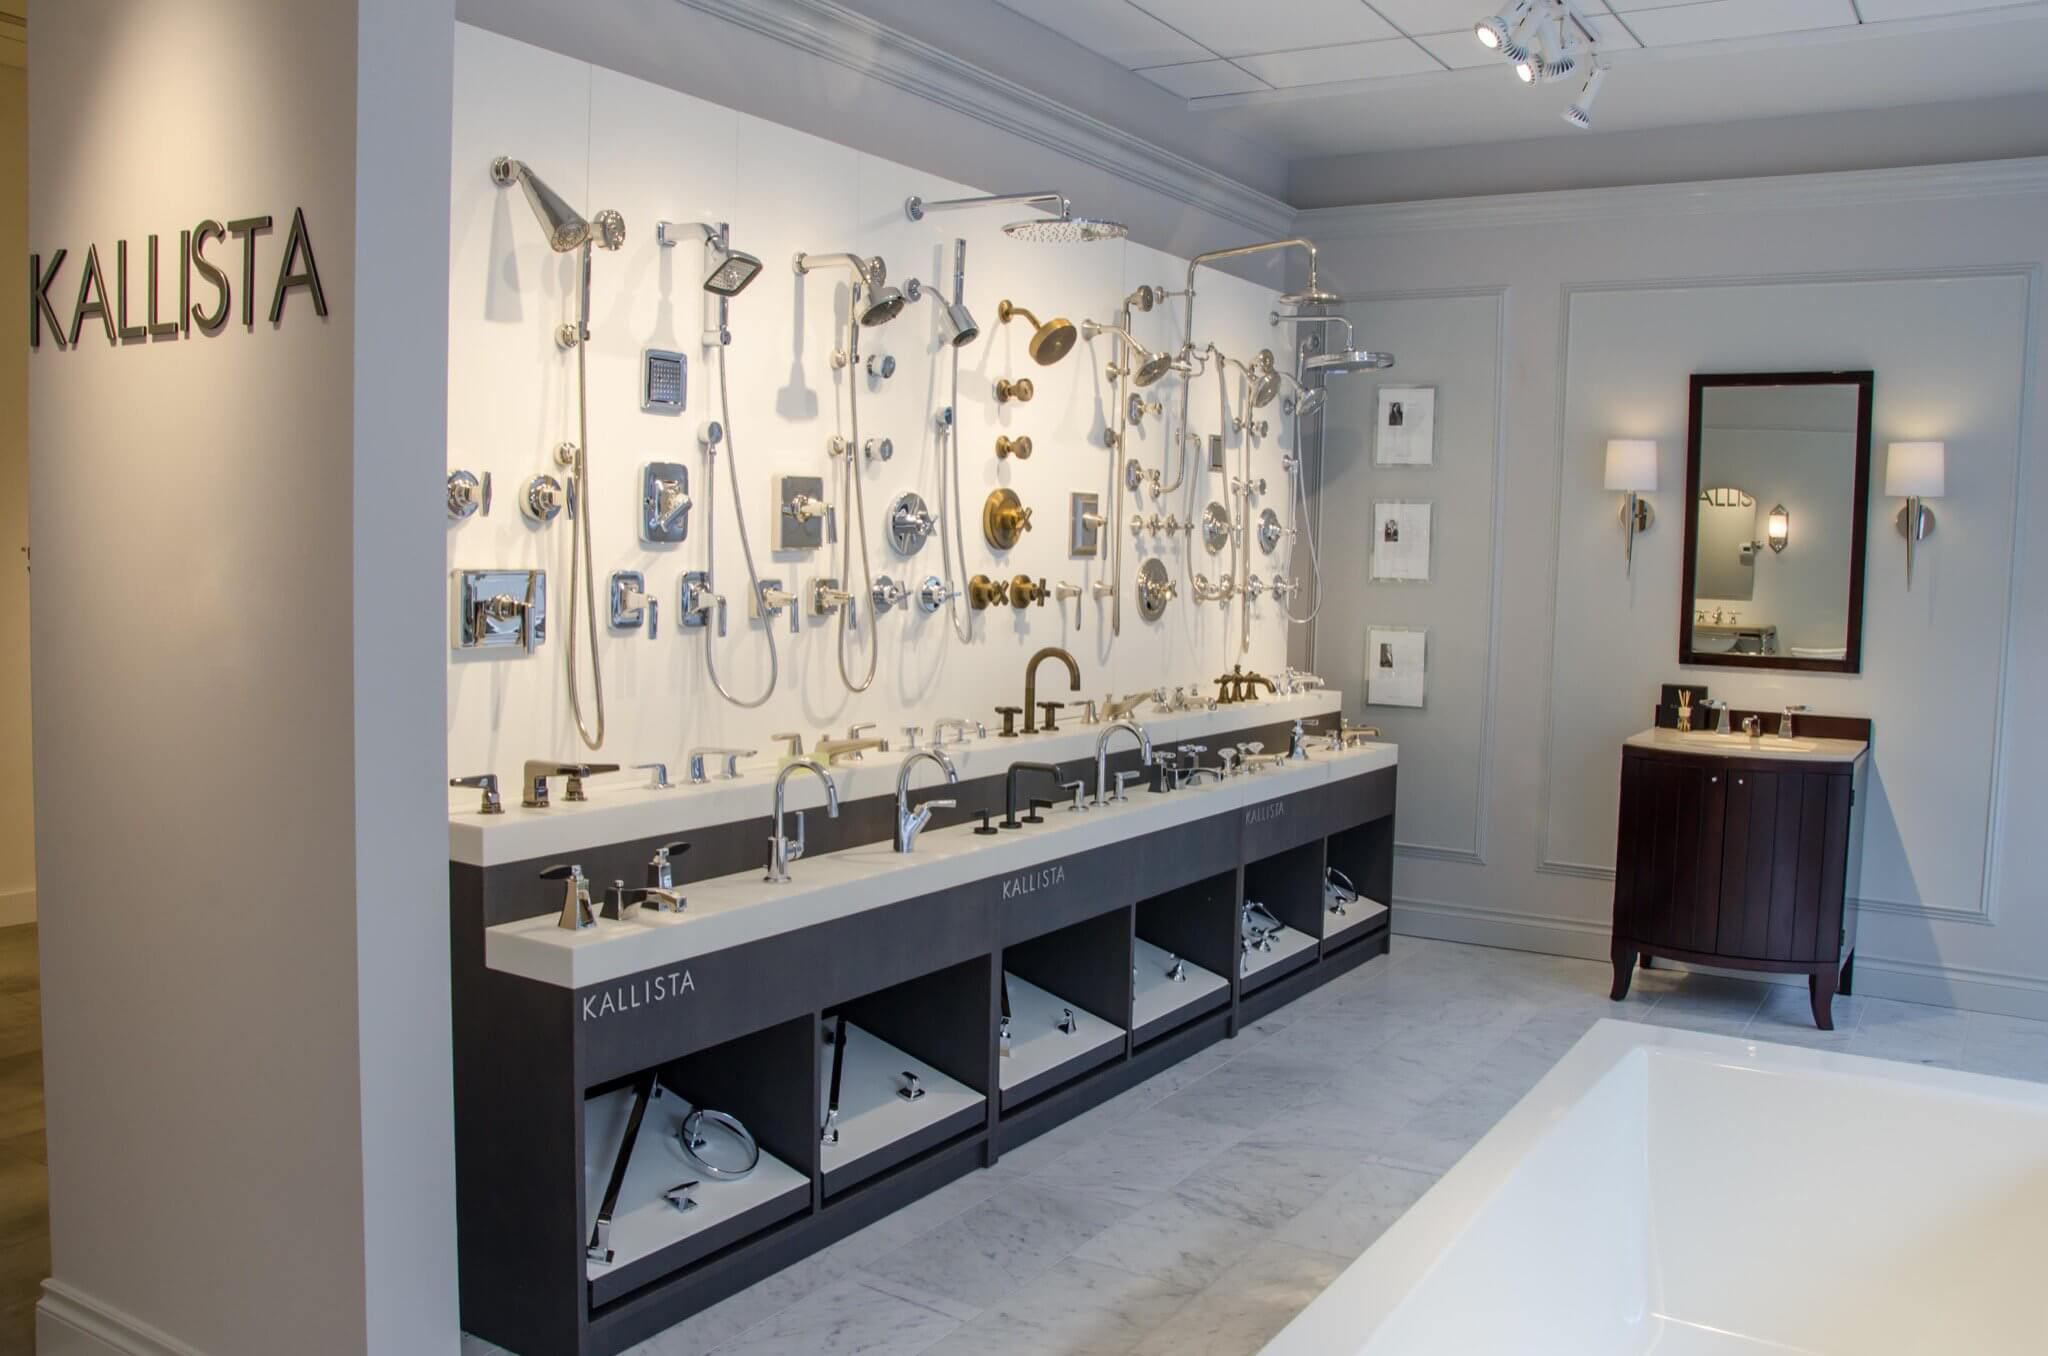 Show Room Showroom Display For Kallista S Faucets And Fixtures Conceptworks